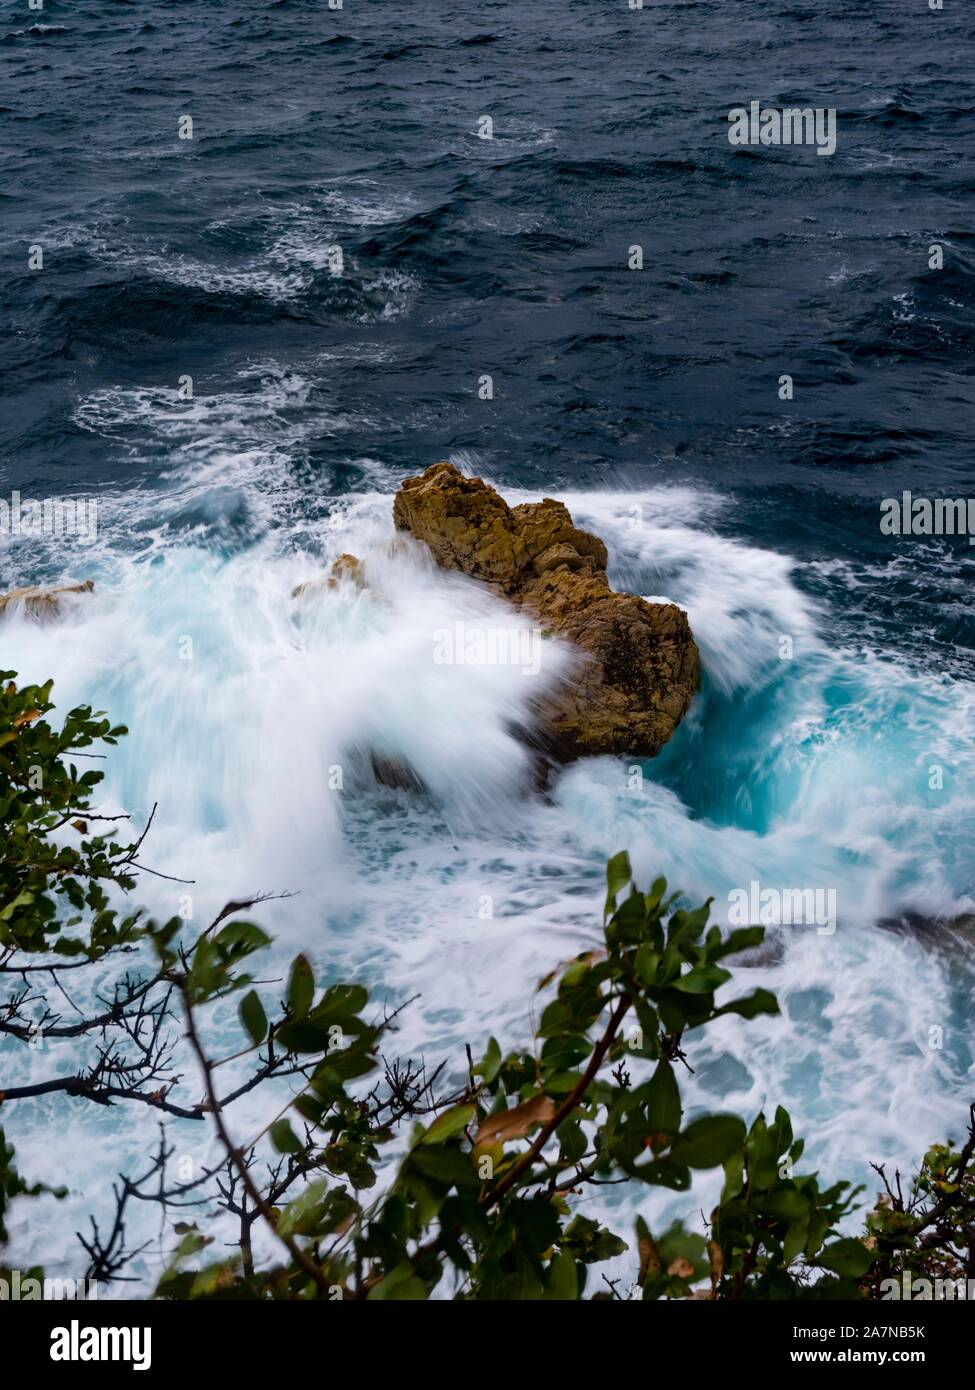 Longish exposure intentionally blurry big wave waves pushing over boulder rock in sea view from above Stock Photo